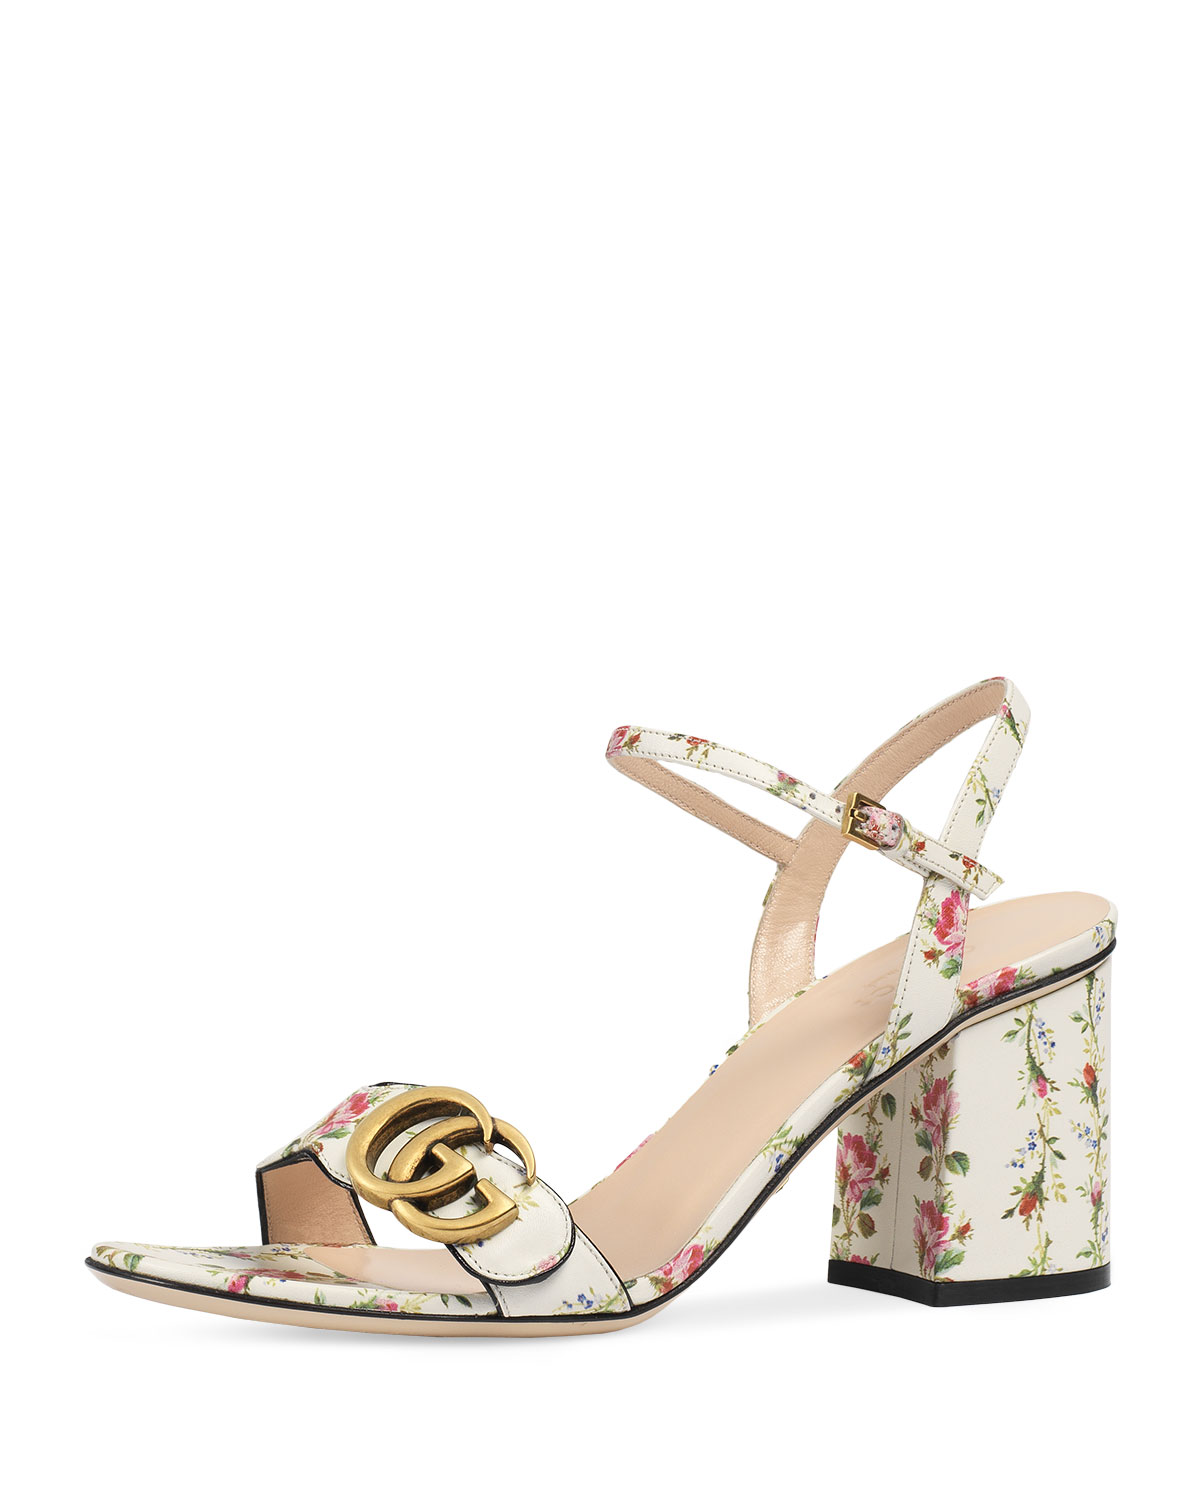 e79945dab Gucci Marmont Rose 75mm Sandal, Floral/White | Neiman Marcus